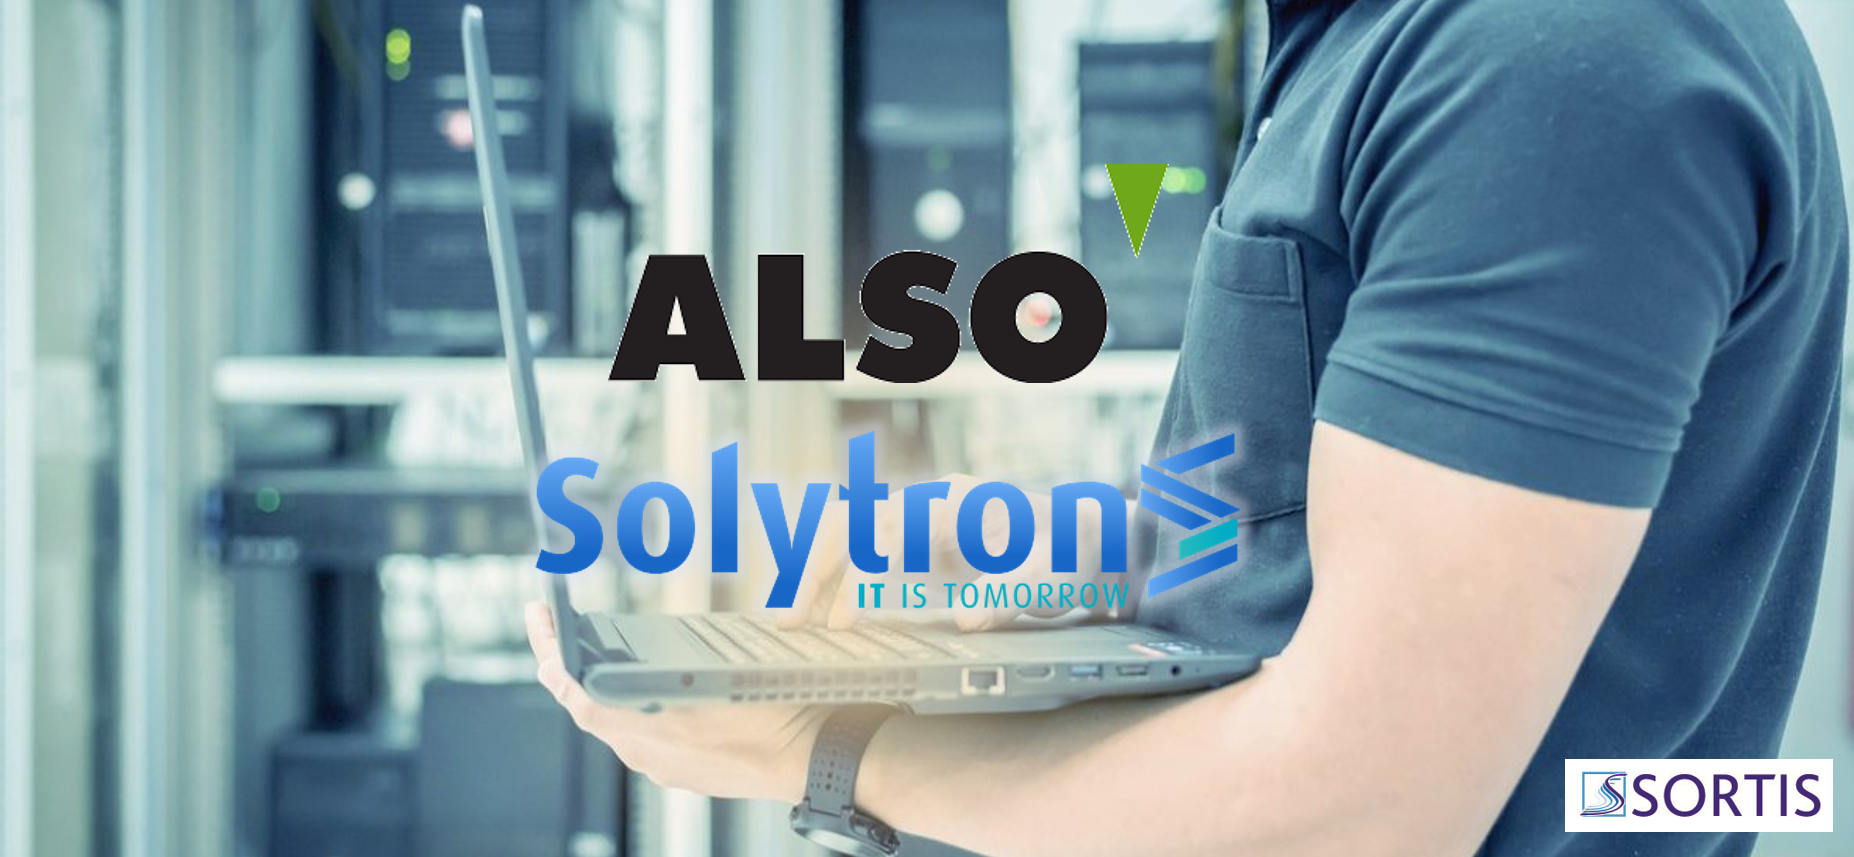 ALSO Holding Enters the Bulgarian IT Sector by Acquiring the Local IT Distributor Solytron